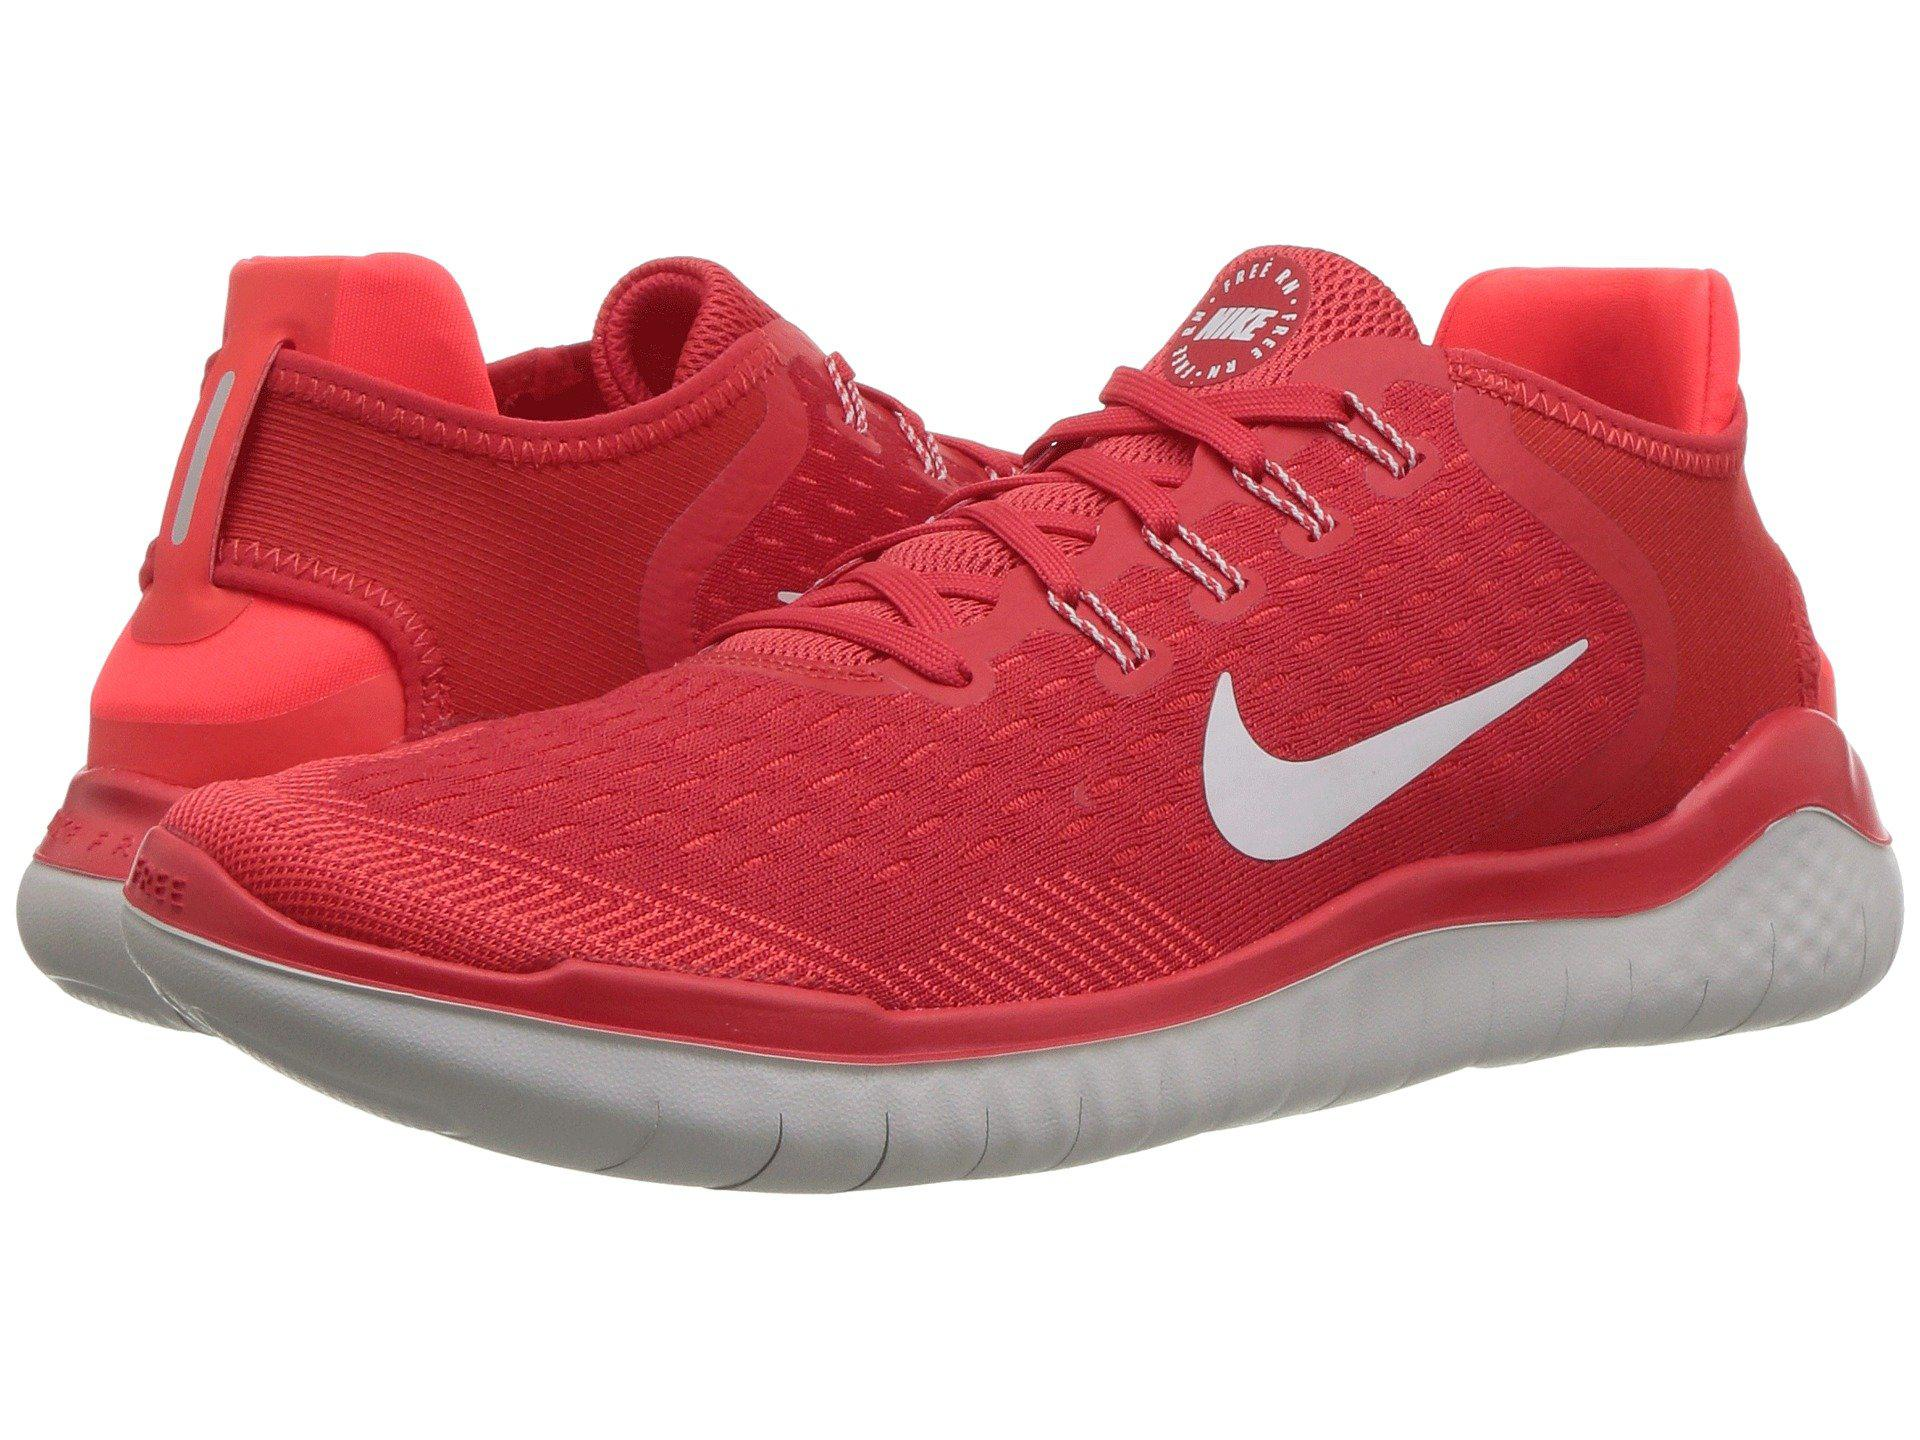 67c5eb82c2e62 Lyst - Nike Free Rn 2018 (white black) Men s Running Shoes in Red ...